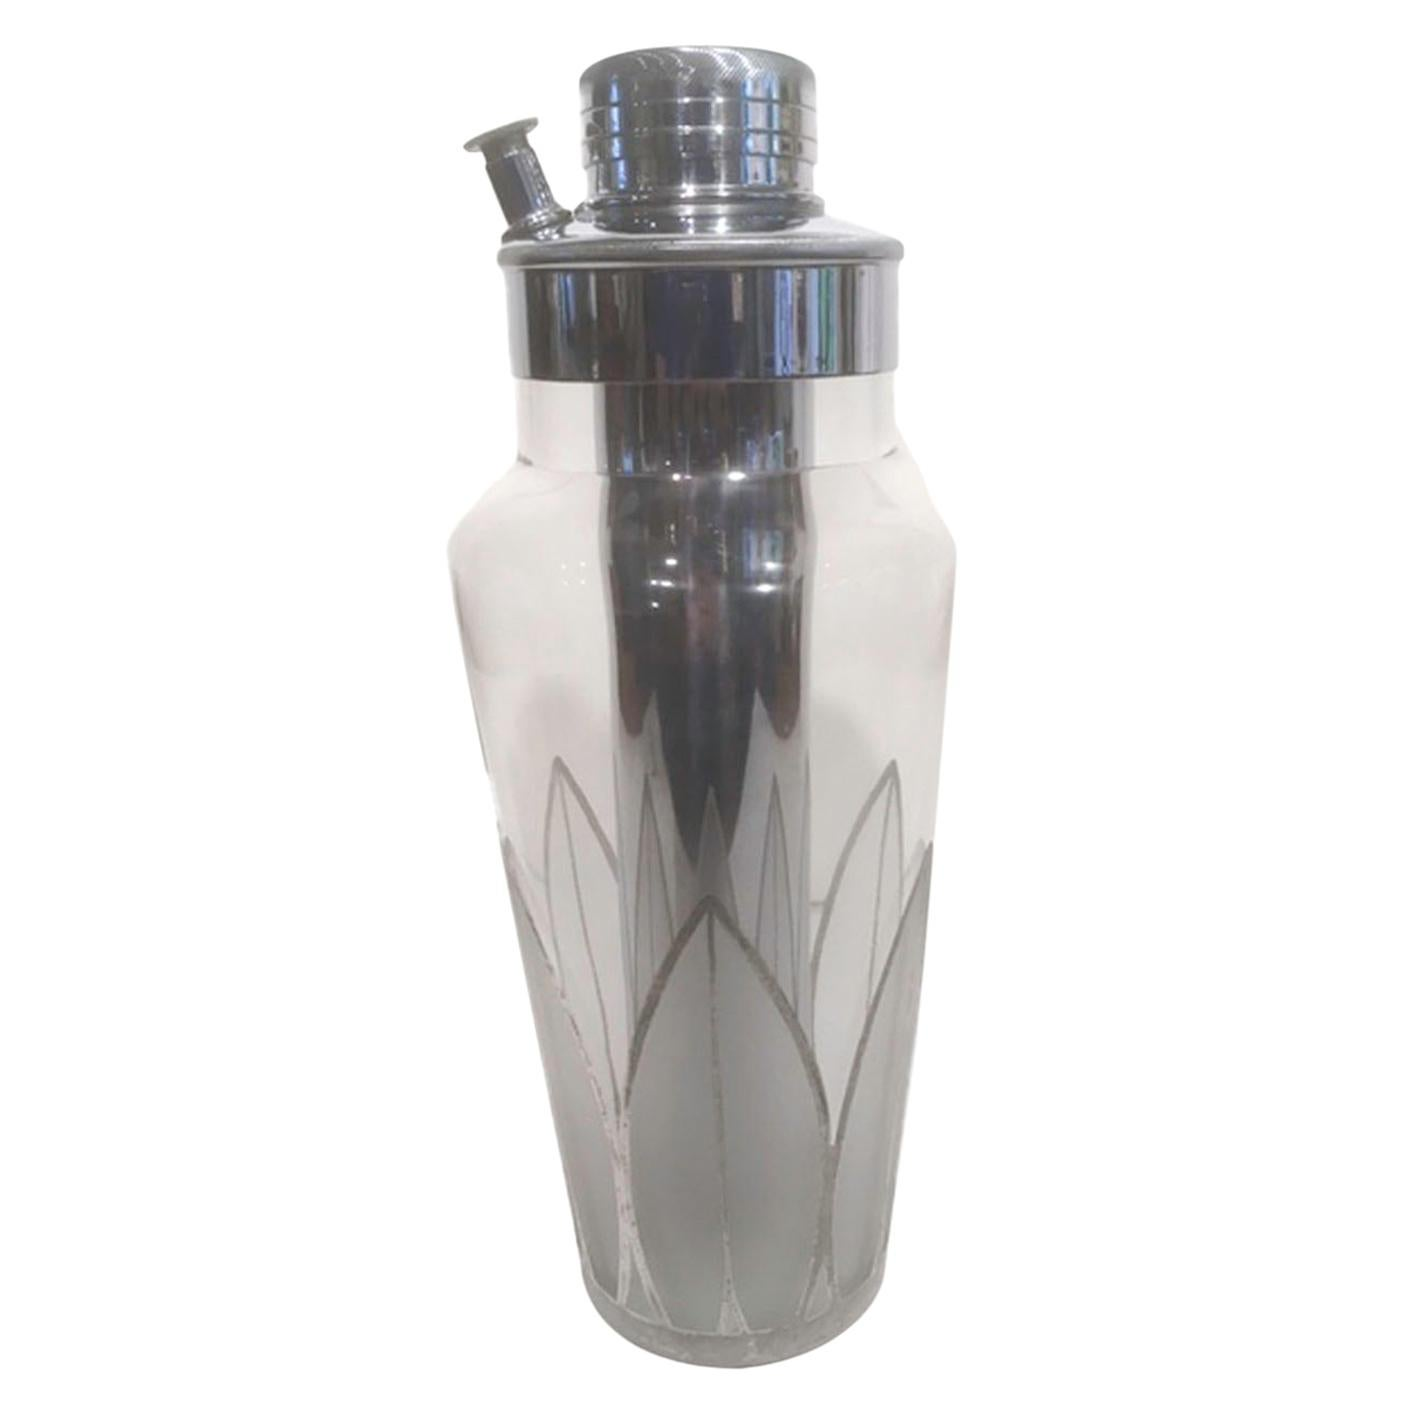 Art Deco Cocktail Shaker with Silver Overlay and Frosted Palmette Design